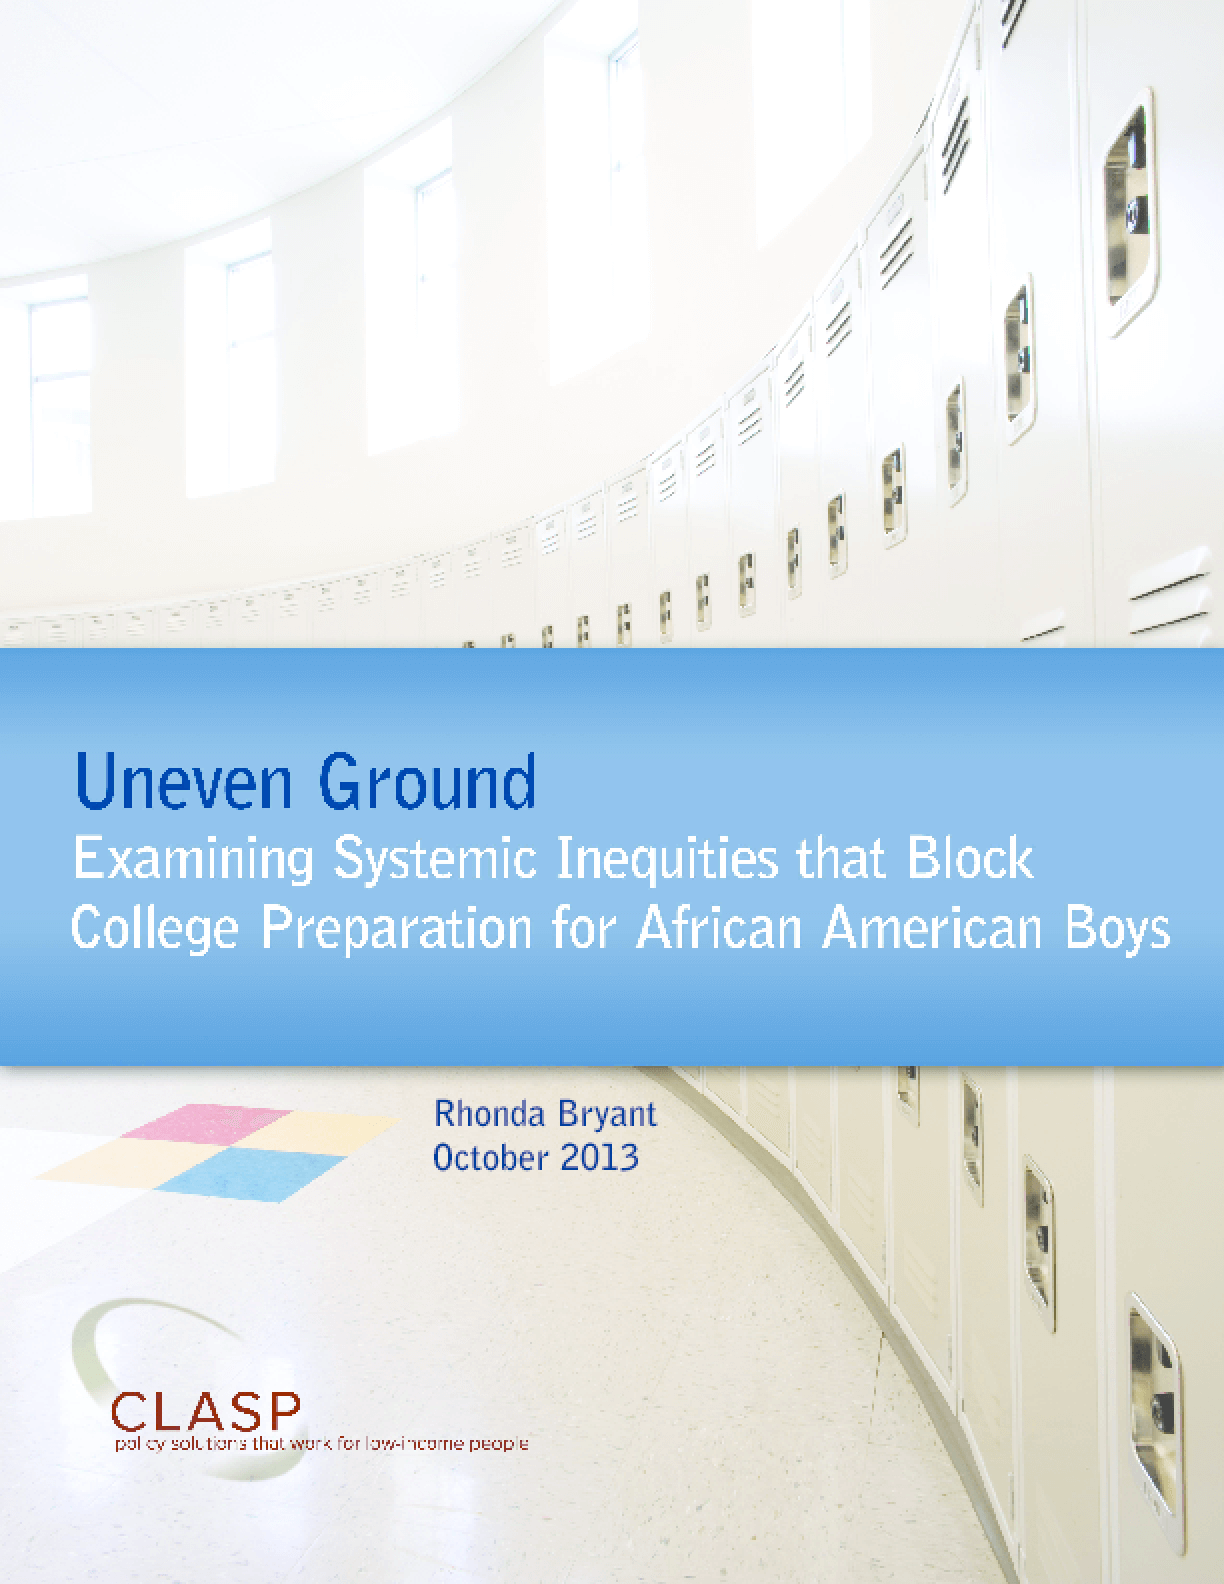 Uneven Ground: Examining Systemic Inequities that Block College Preparation for African American Boys